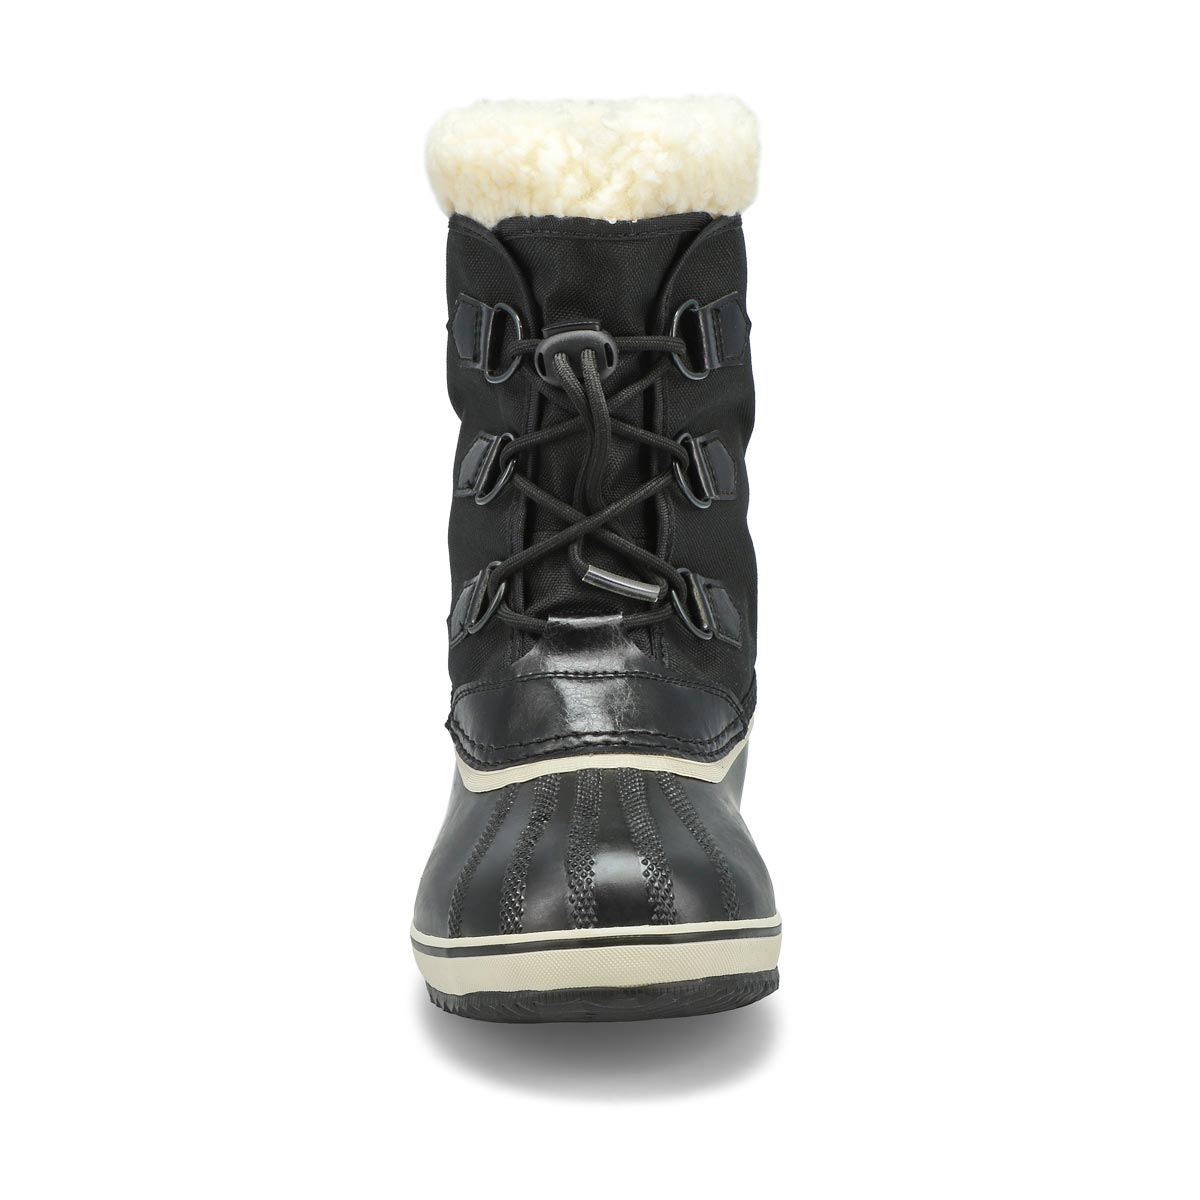 Kds Yoot Pac Nylon blk wtpf snow boot